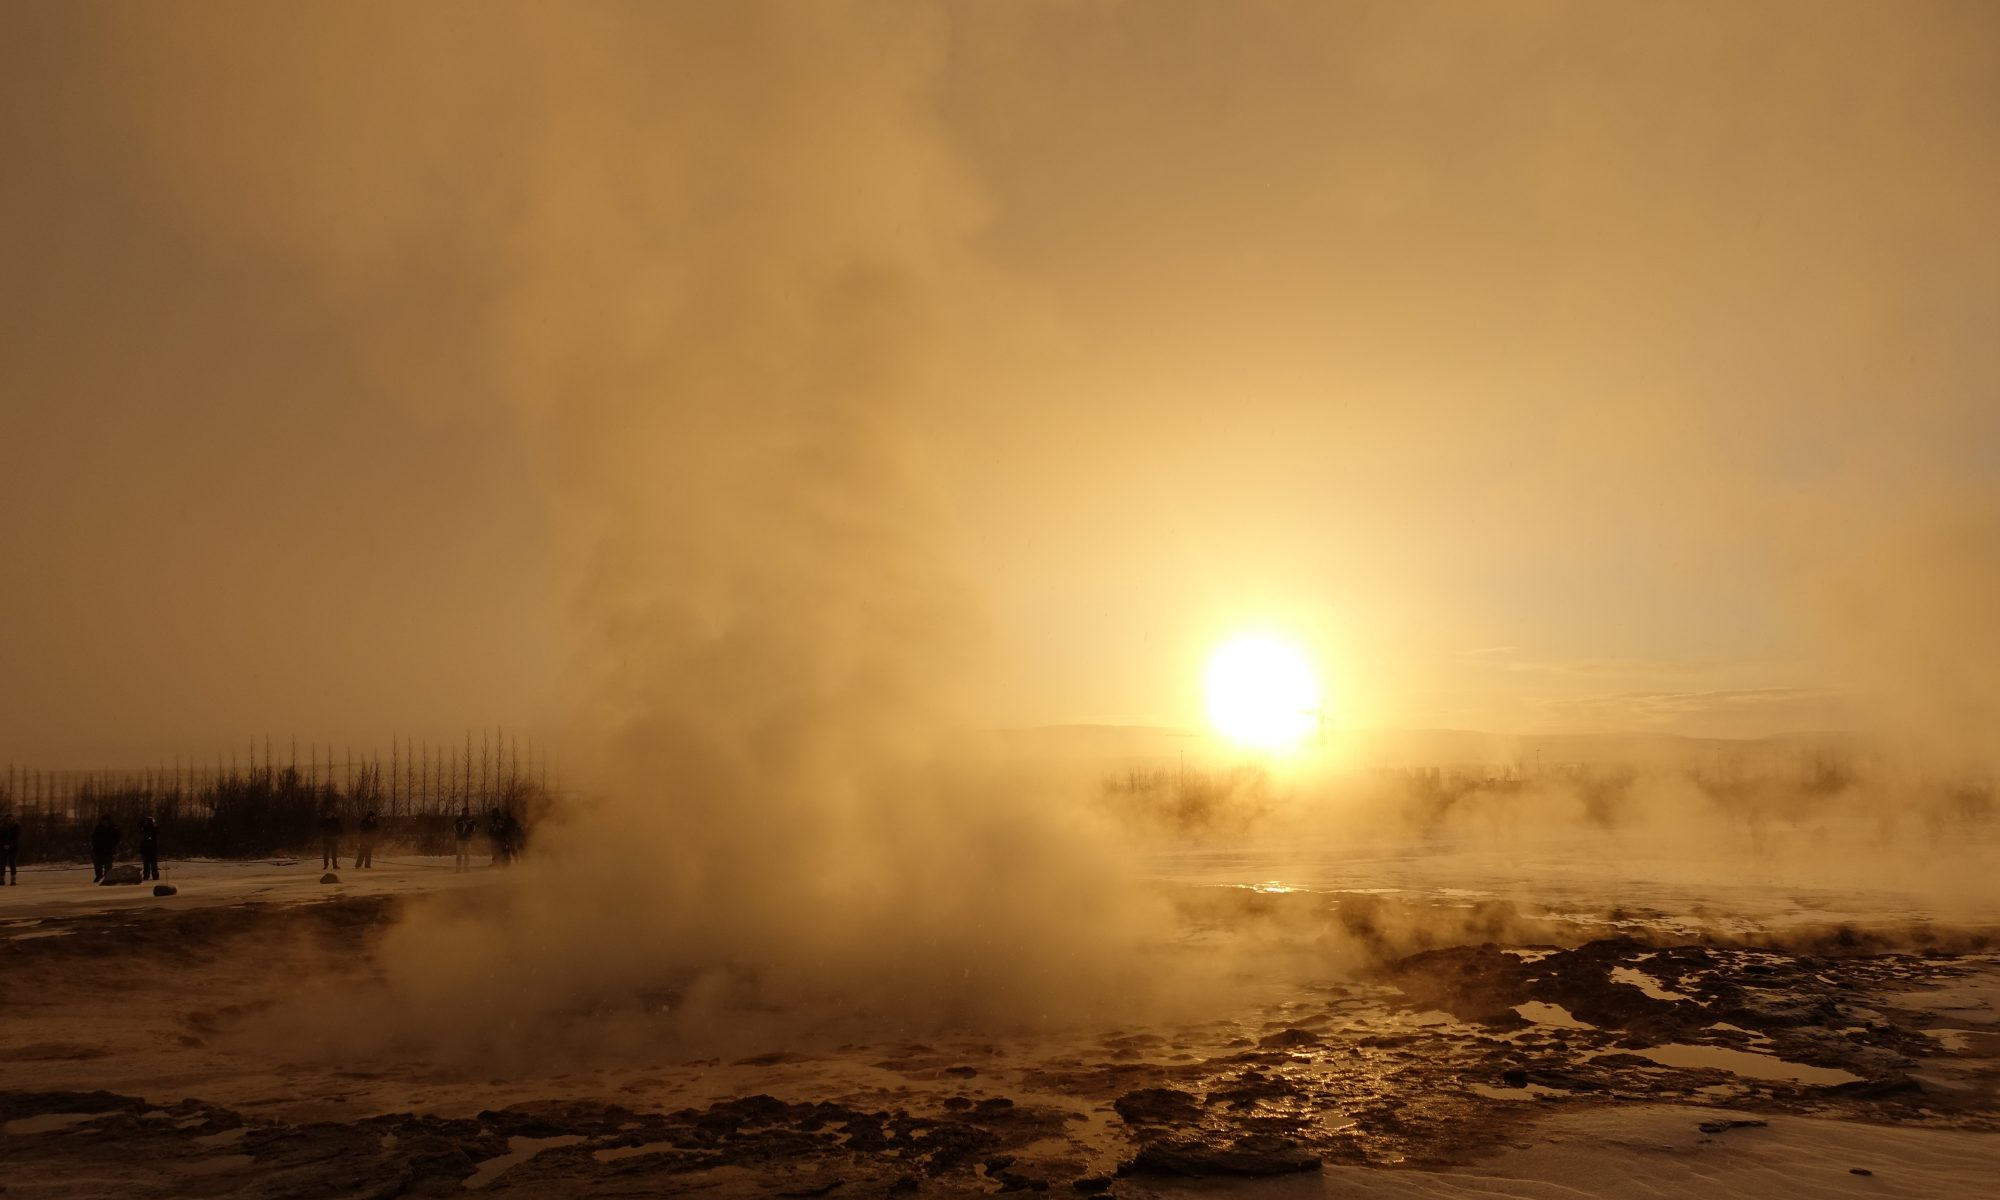 Iceland Geyser Golden Circle Tour